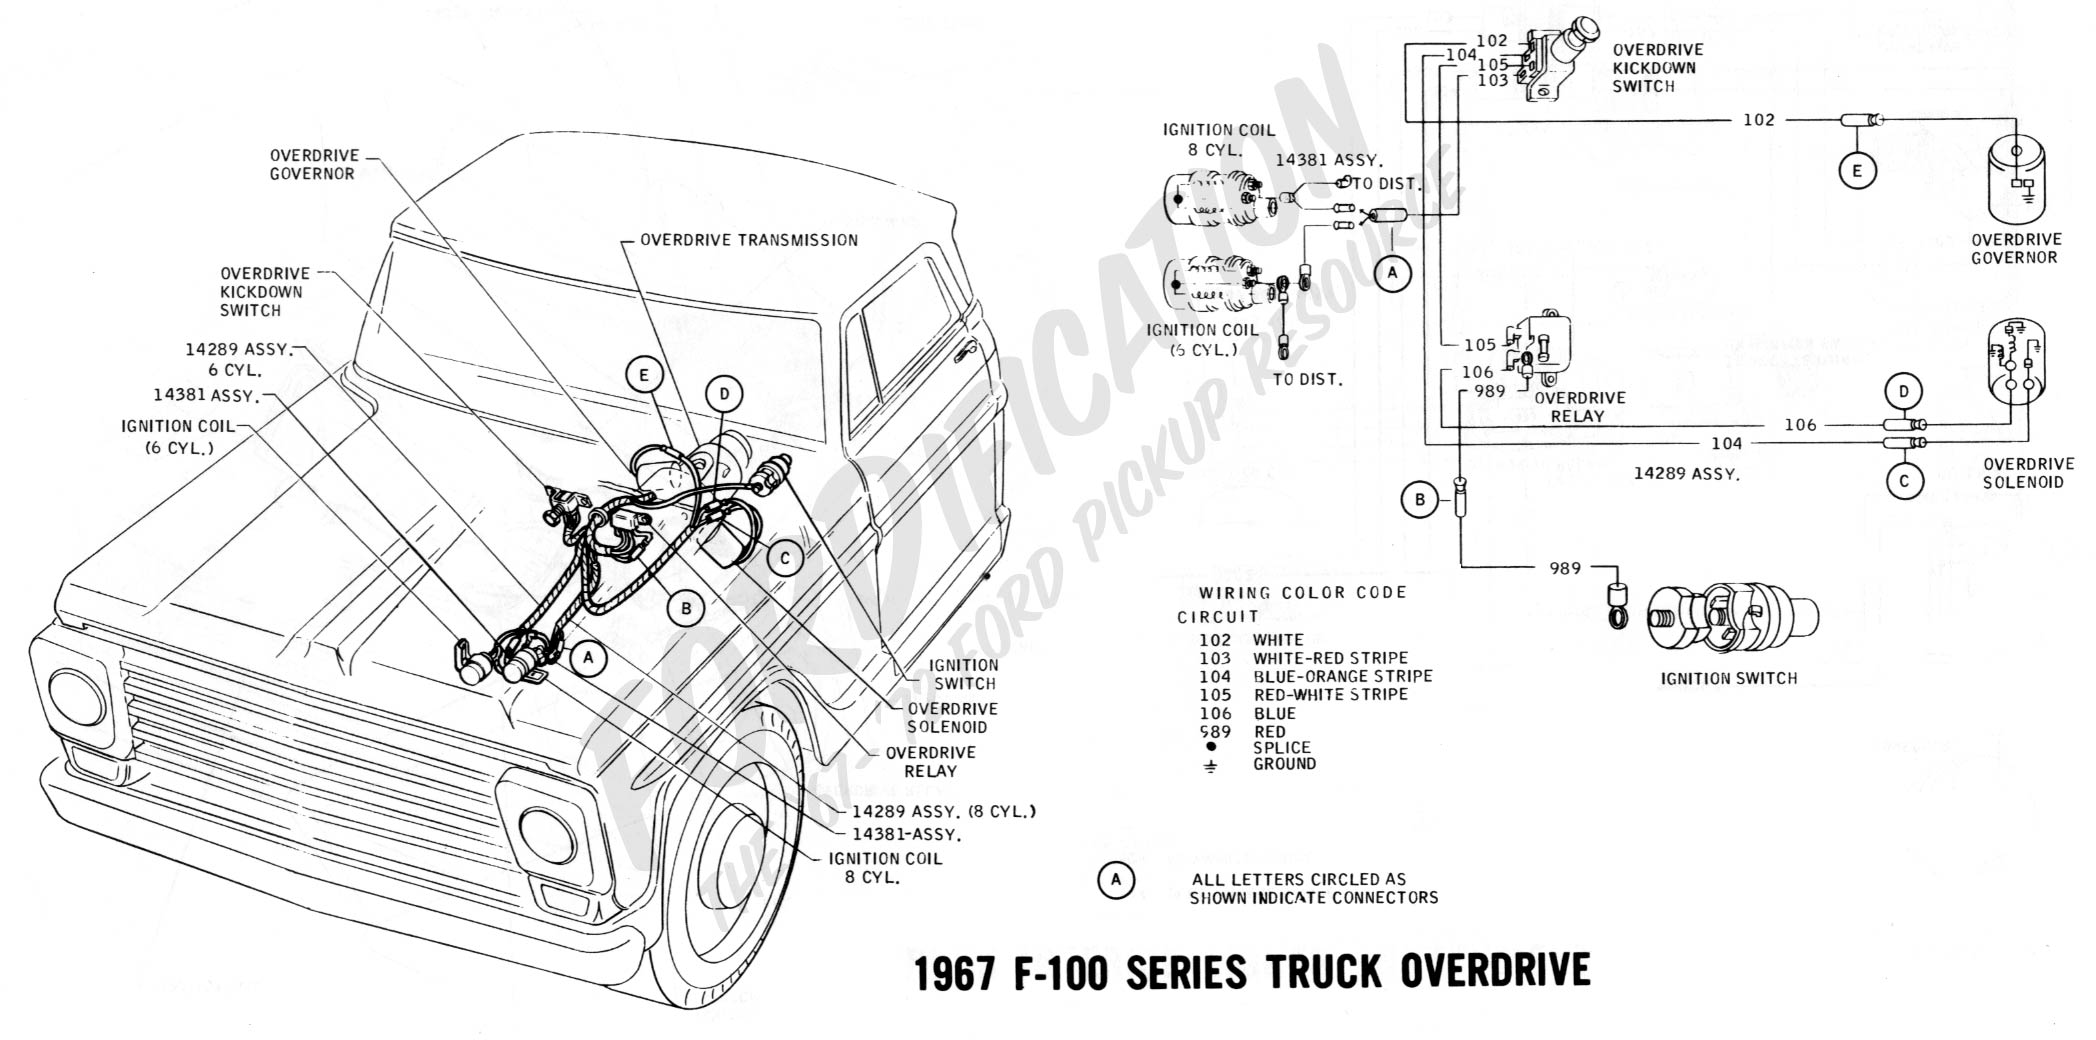 Admirable 64 Ford Truck Wiring Wiring Diagram Database Wiring Cloud Eachirenstrafr09Org